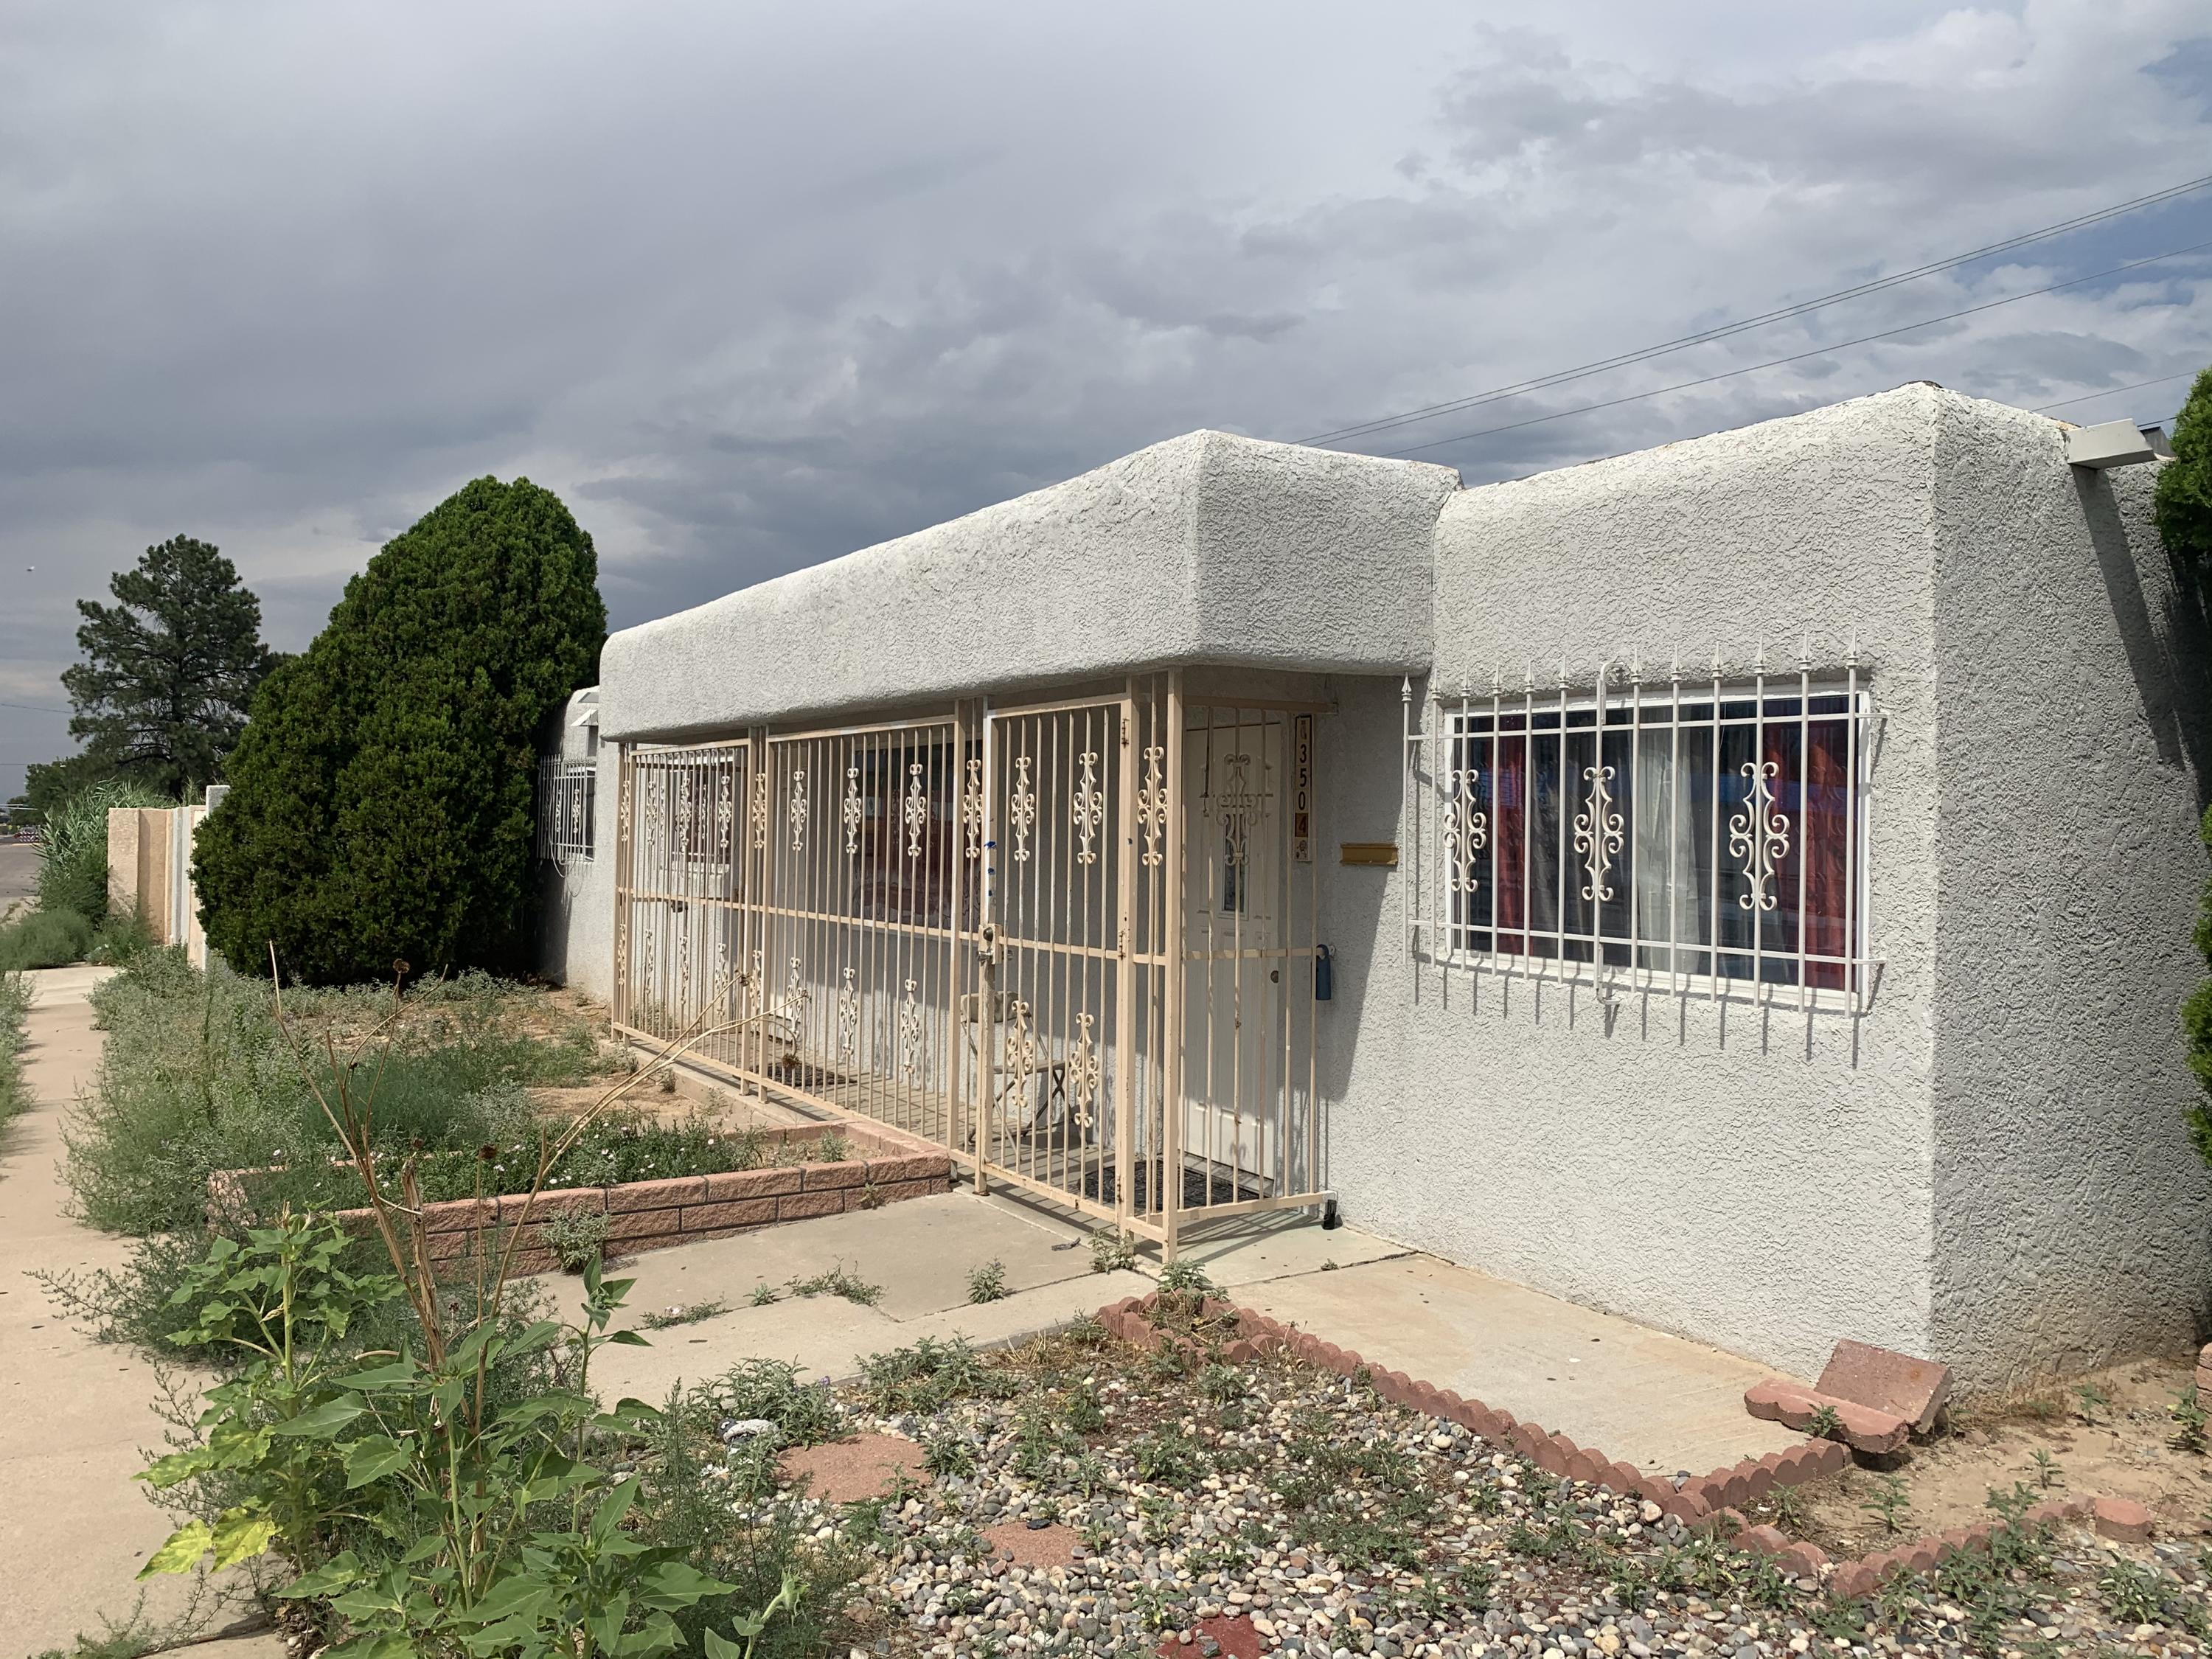 This home is a great OPPORTUNITY for the right buyer. The structure has great bones, just needs a little cleanup. Plenty of room, the largest square foot home in the area. Lot's of potential.